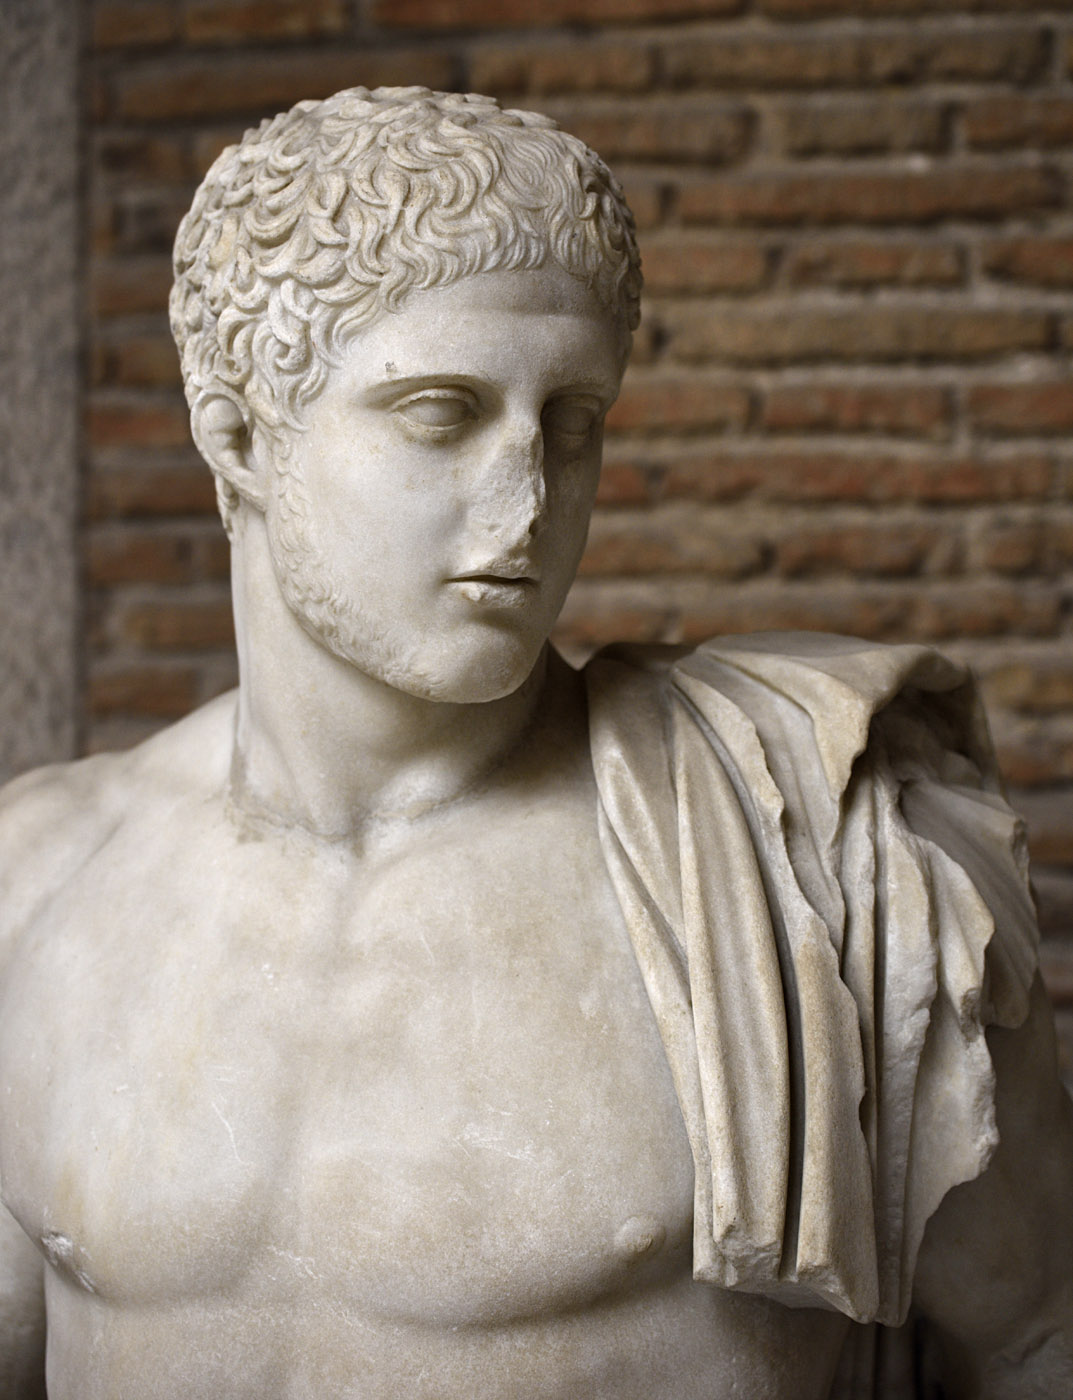 Diomedes. Marble. Roman copy after attic original of 450—430 BCE presumably by Kresilas. Inv. No. 144978. Naples, National Archaeological Museum